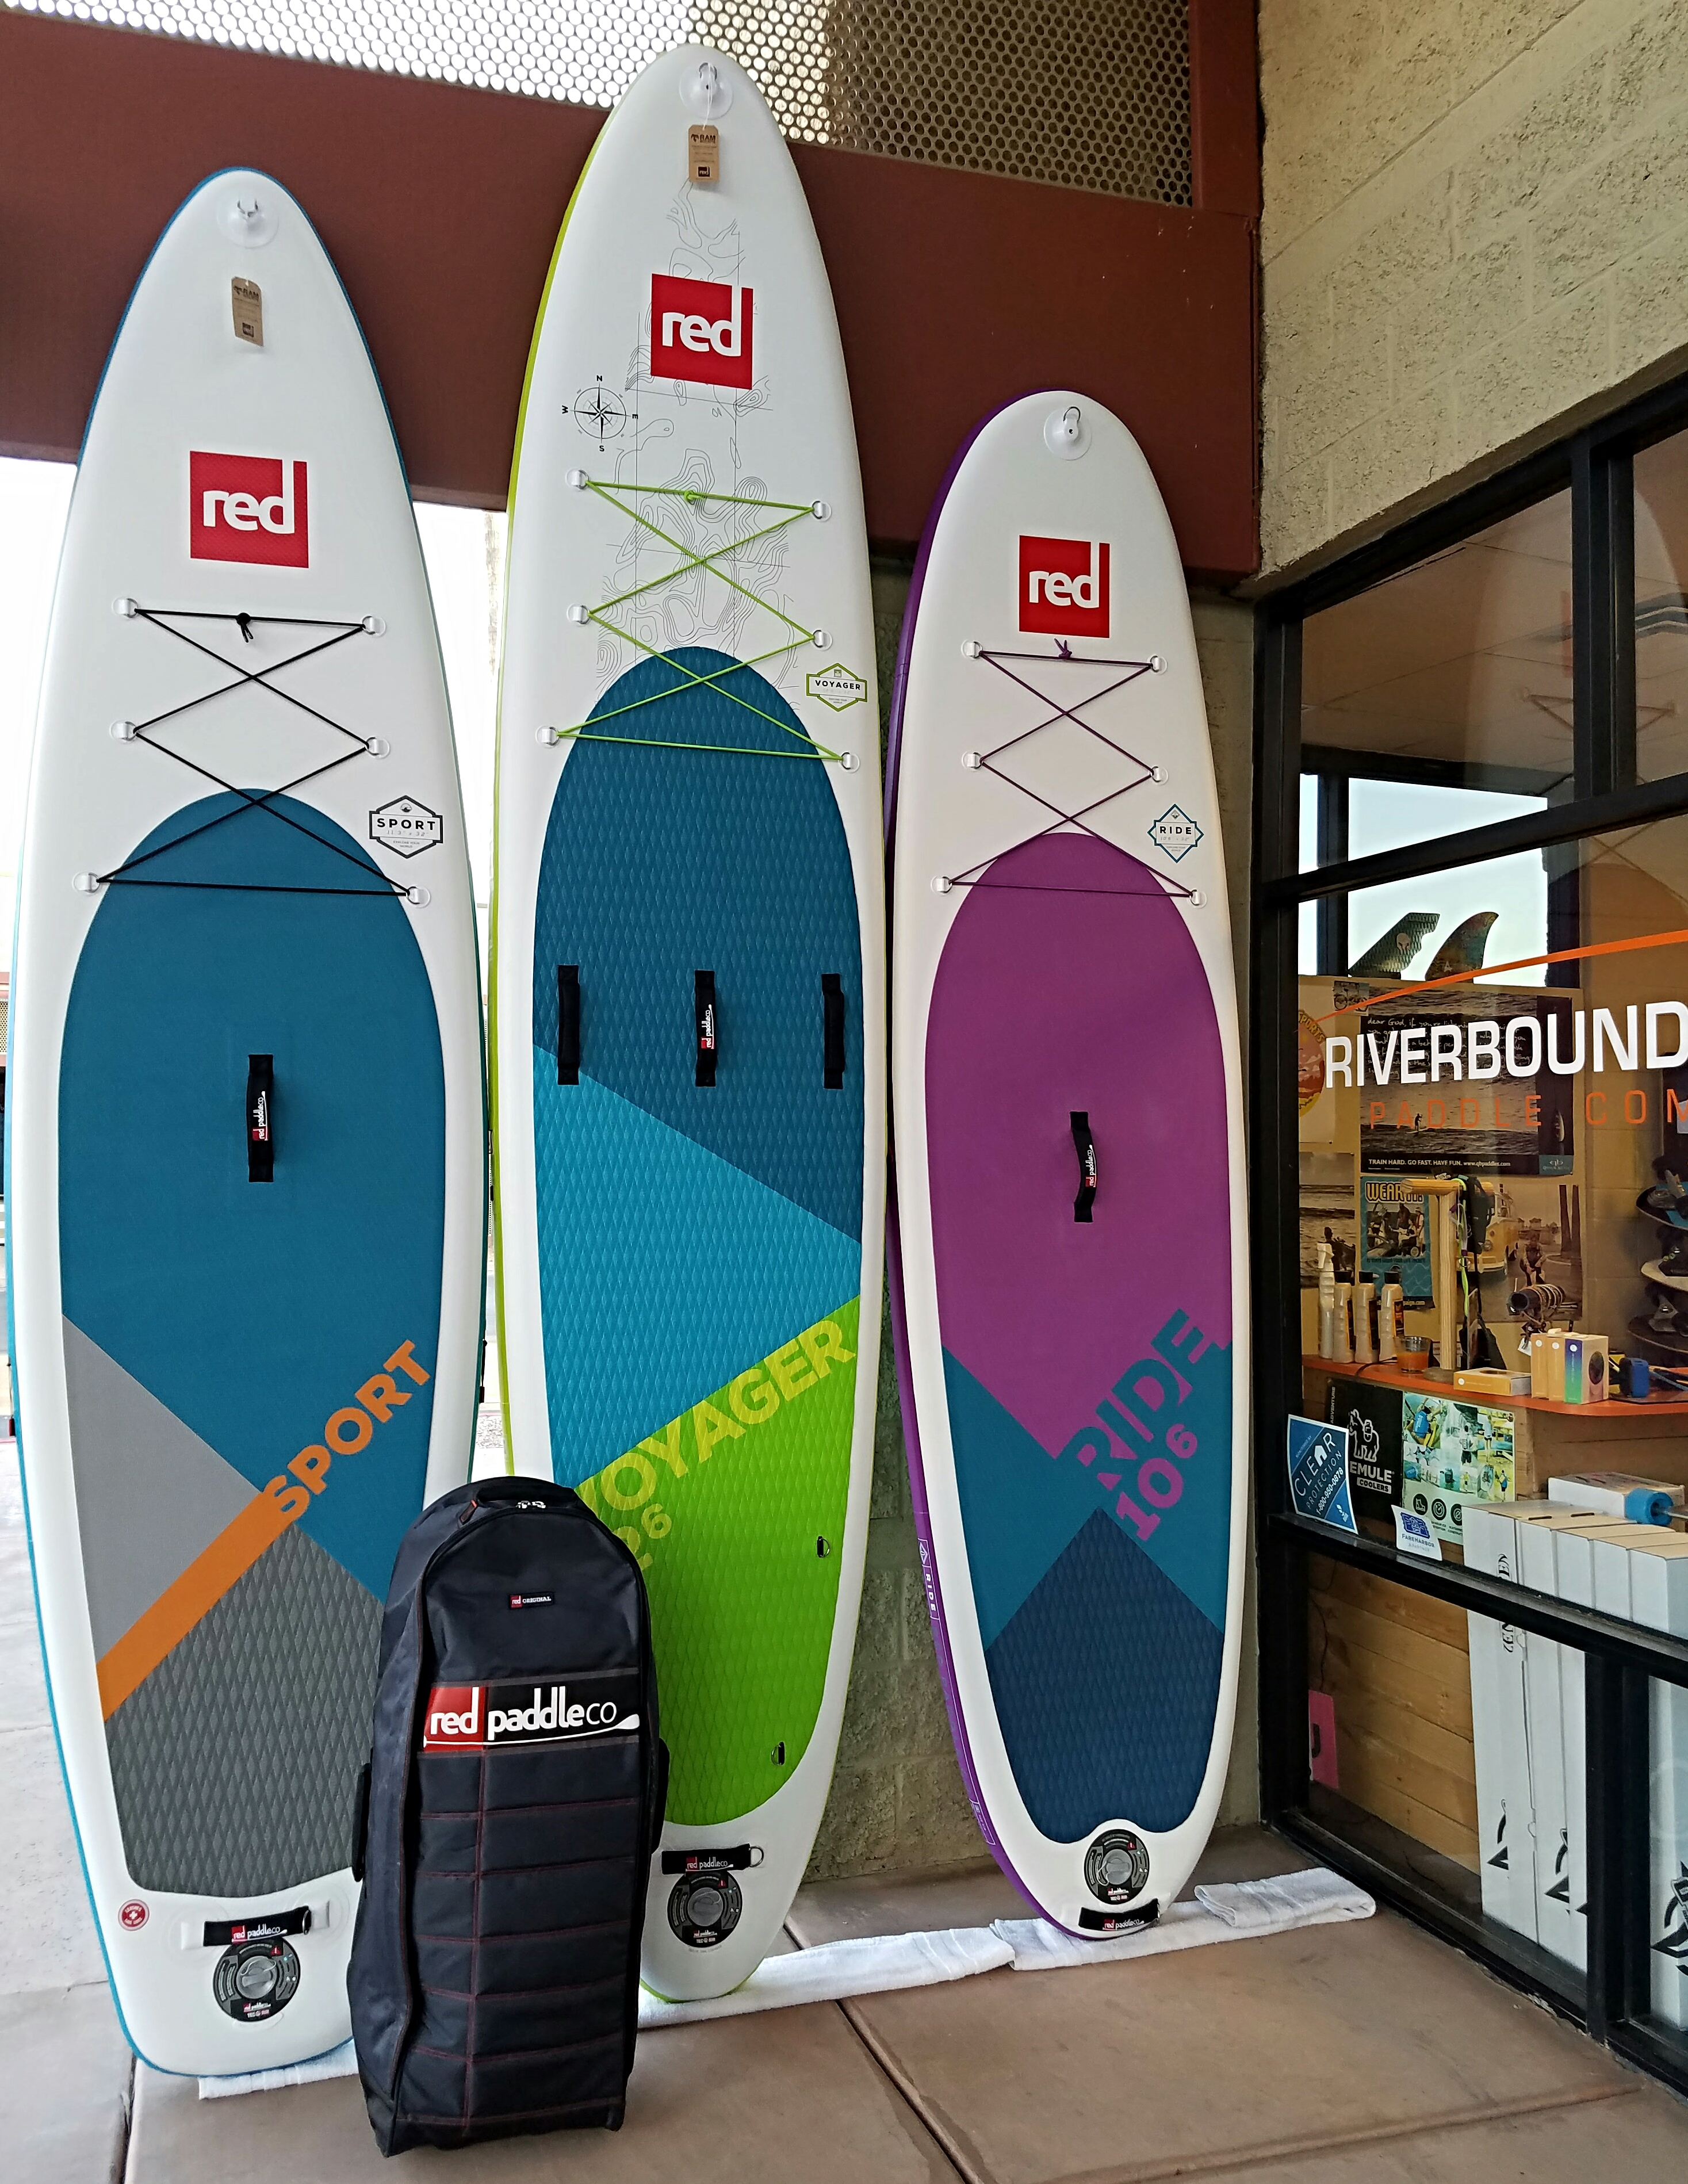 Riverbound Sports Stand Up Paddleboard Shop image 6